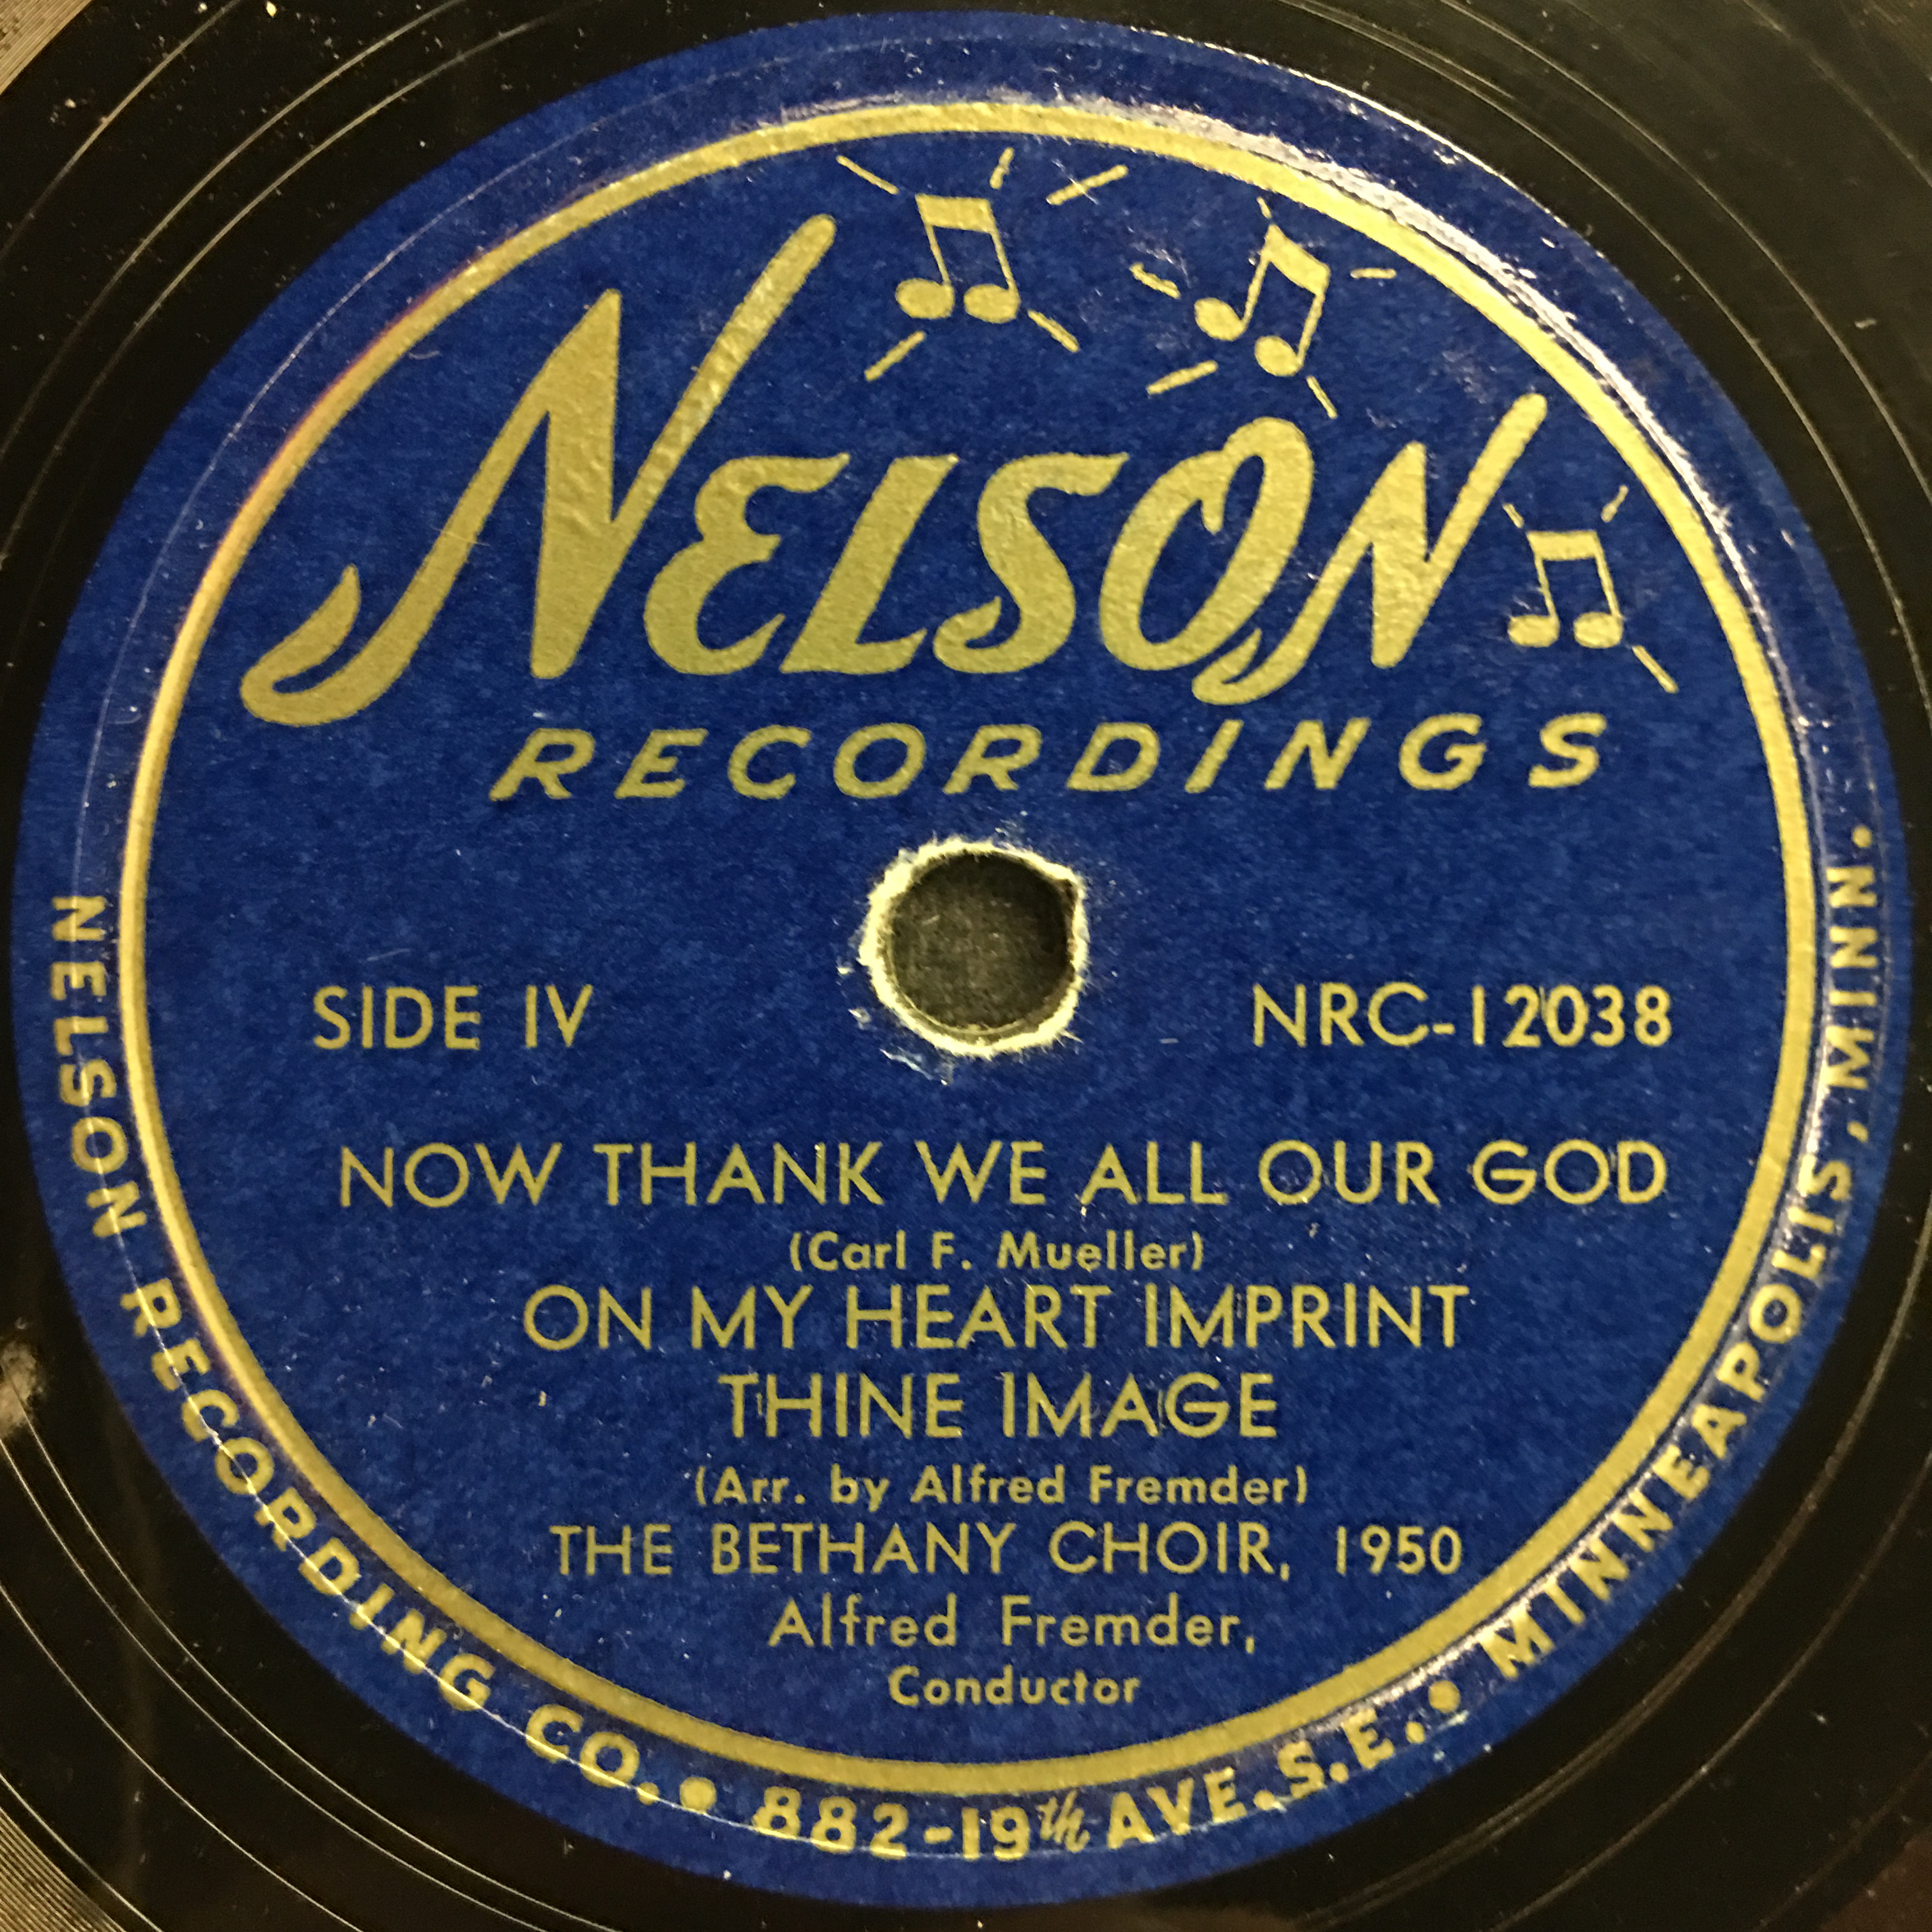 The Bethany Choir 1950: Sing Praises, Ye Faithful Vinyl 2 Side 2